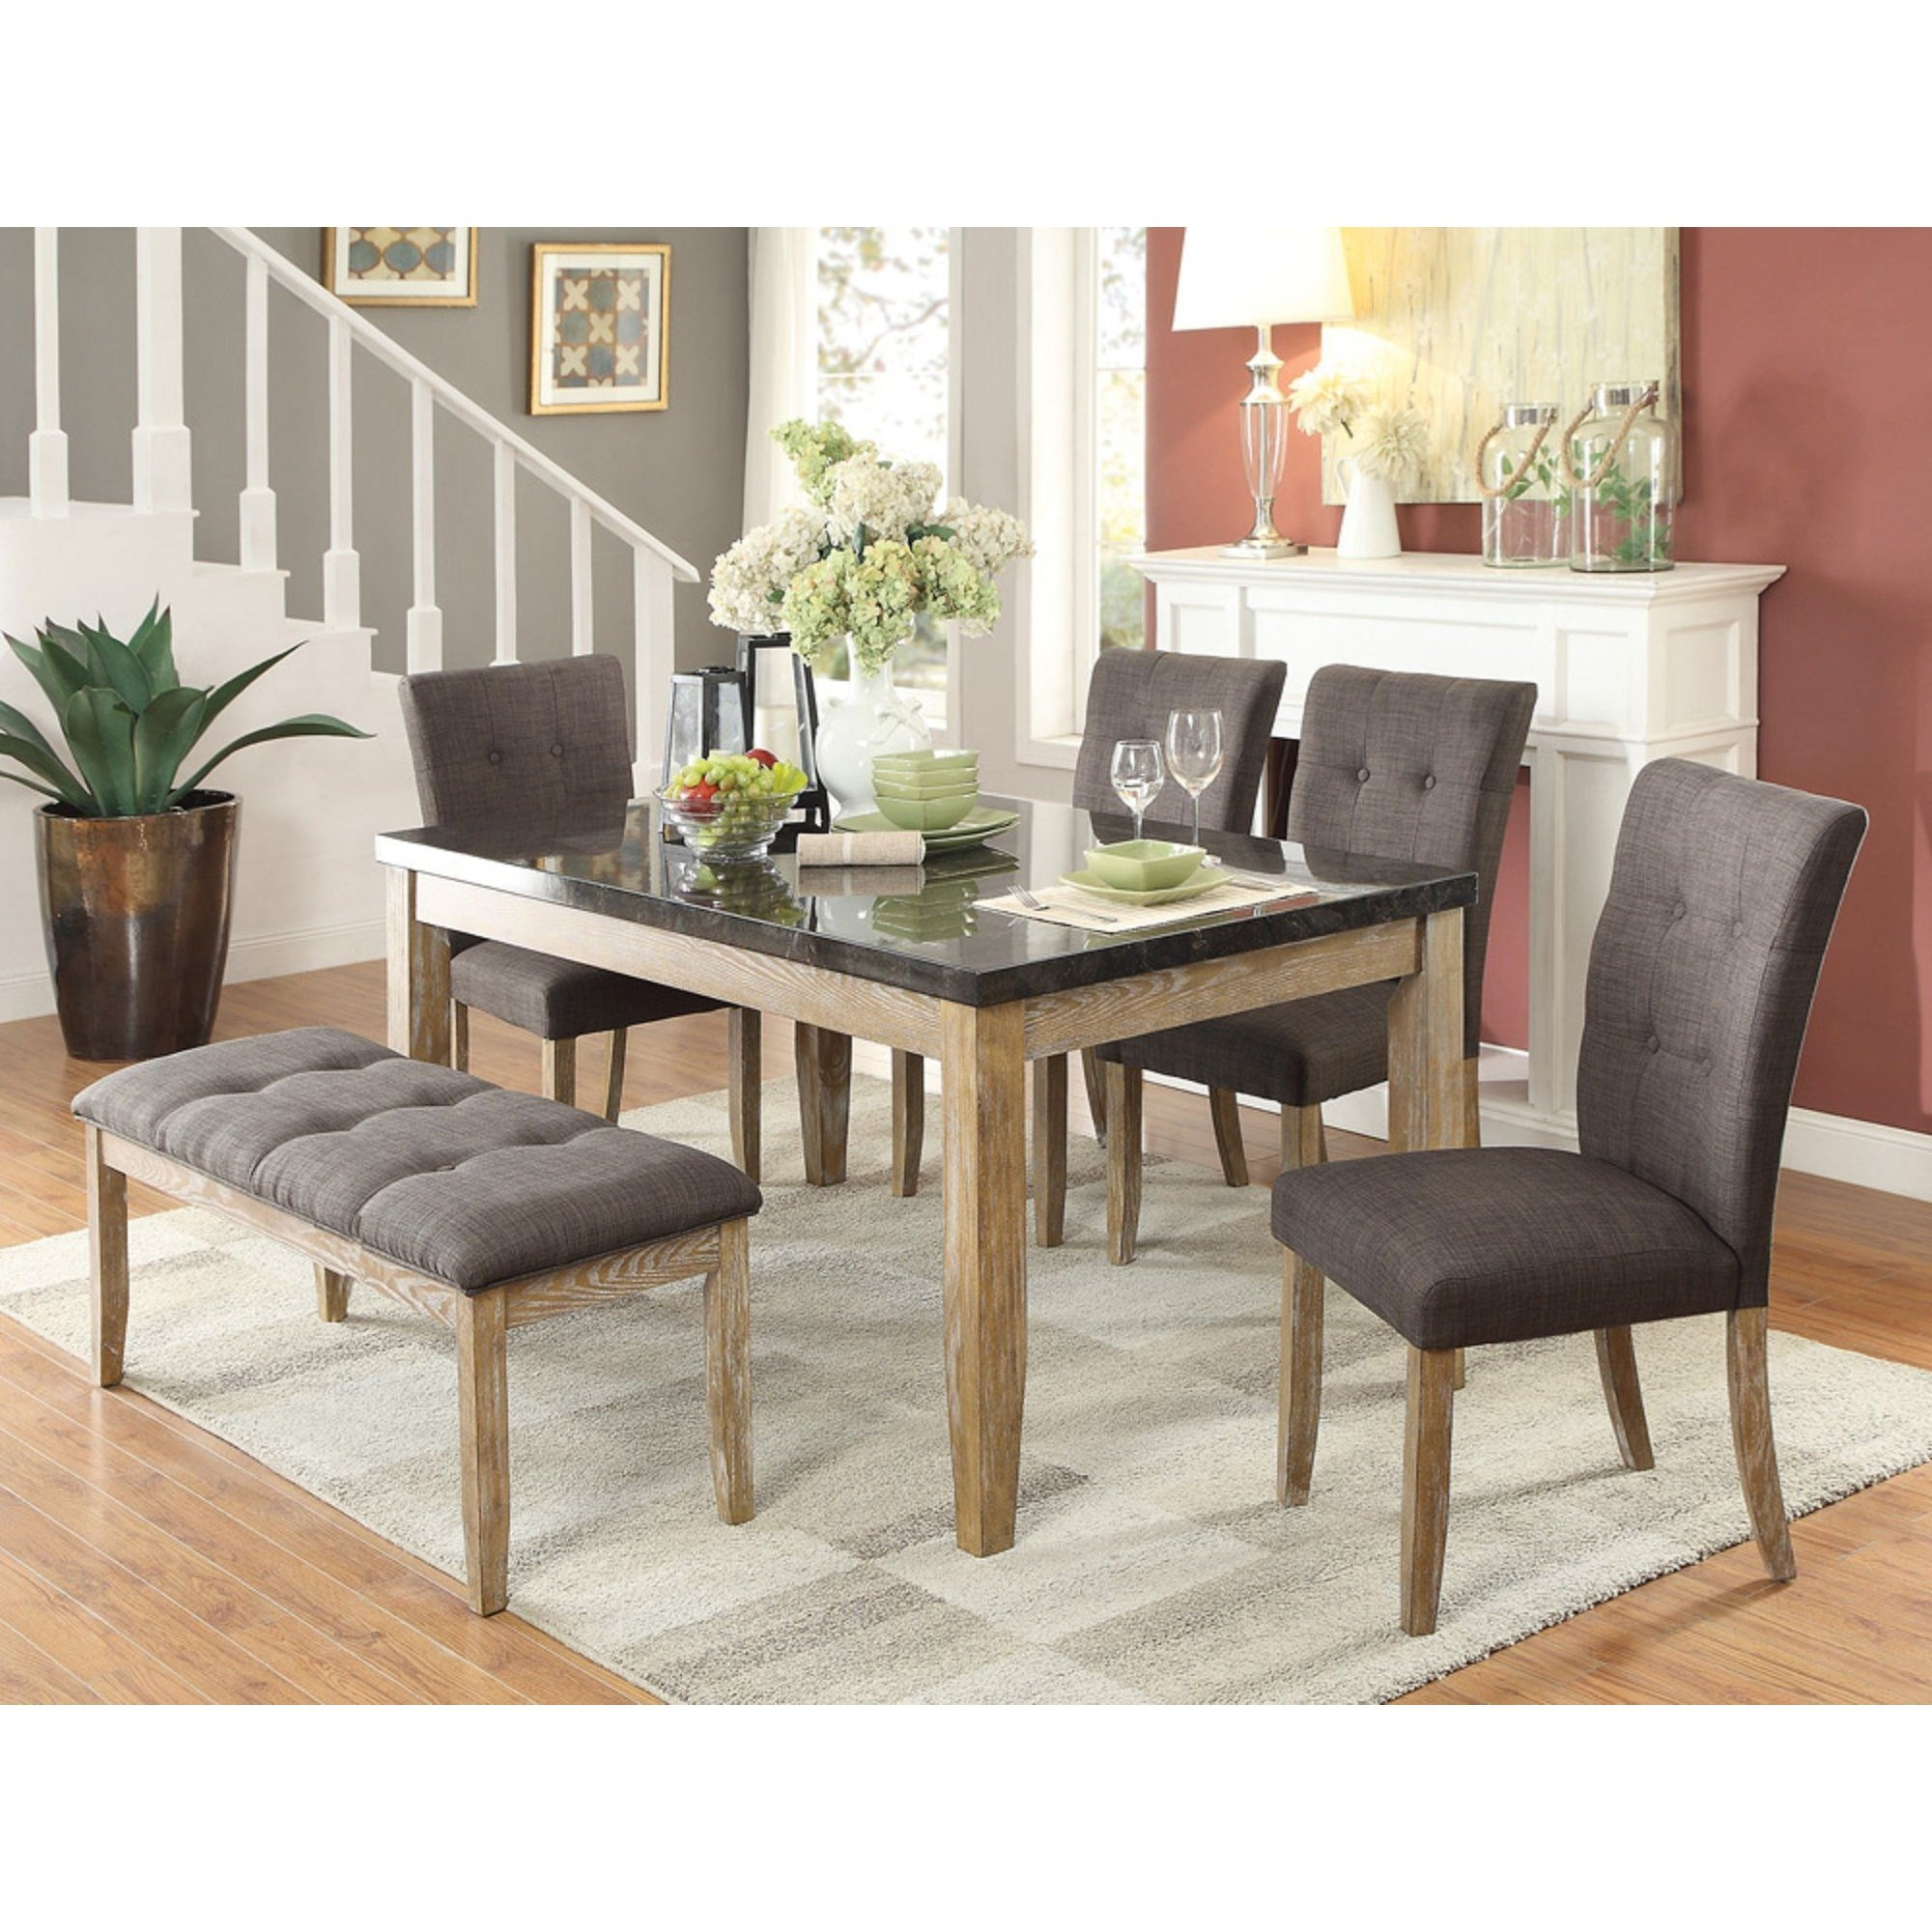 Huron Contemporary Table and Chair Set with Bench by Homelegance at Simply Home by Lindy's